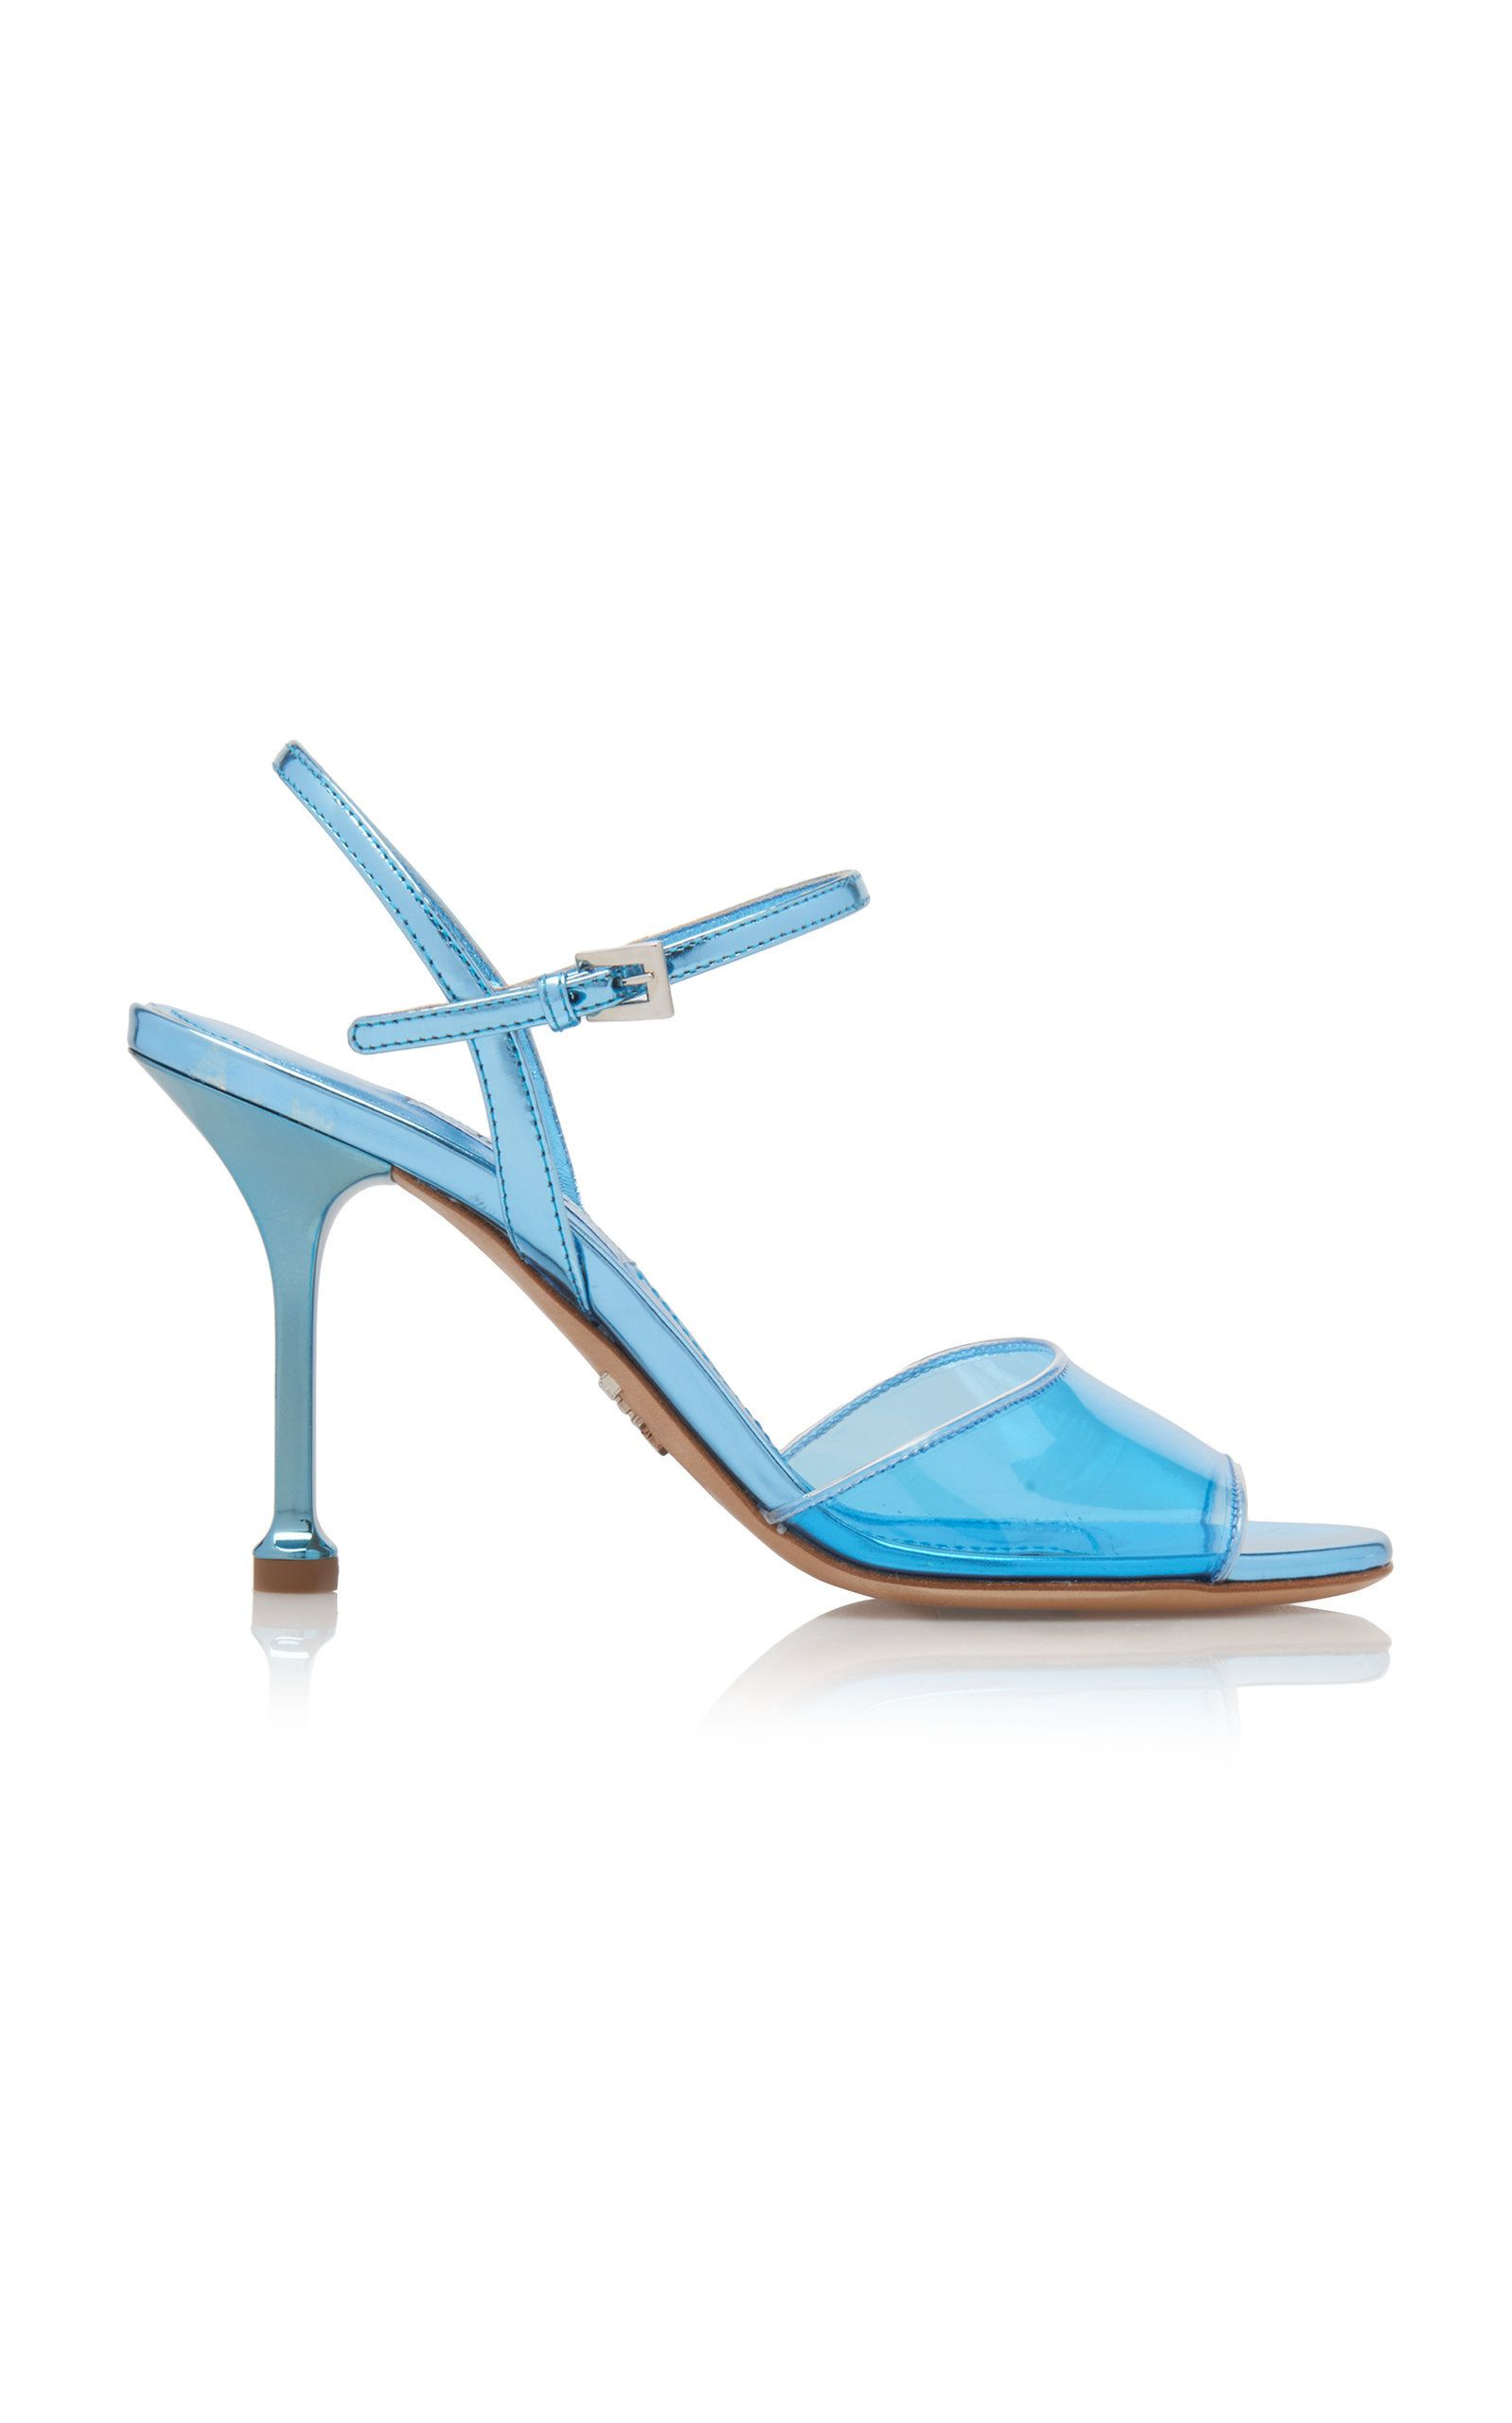 24cc00176b2 37 Blue Wedding Shoes - The Best Blue Shoes For Your Wedding